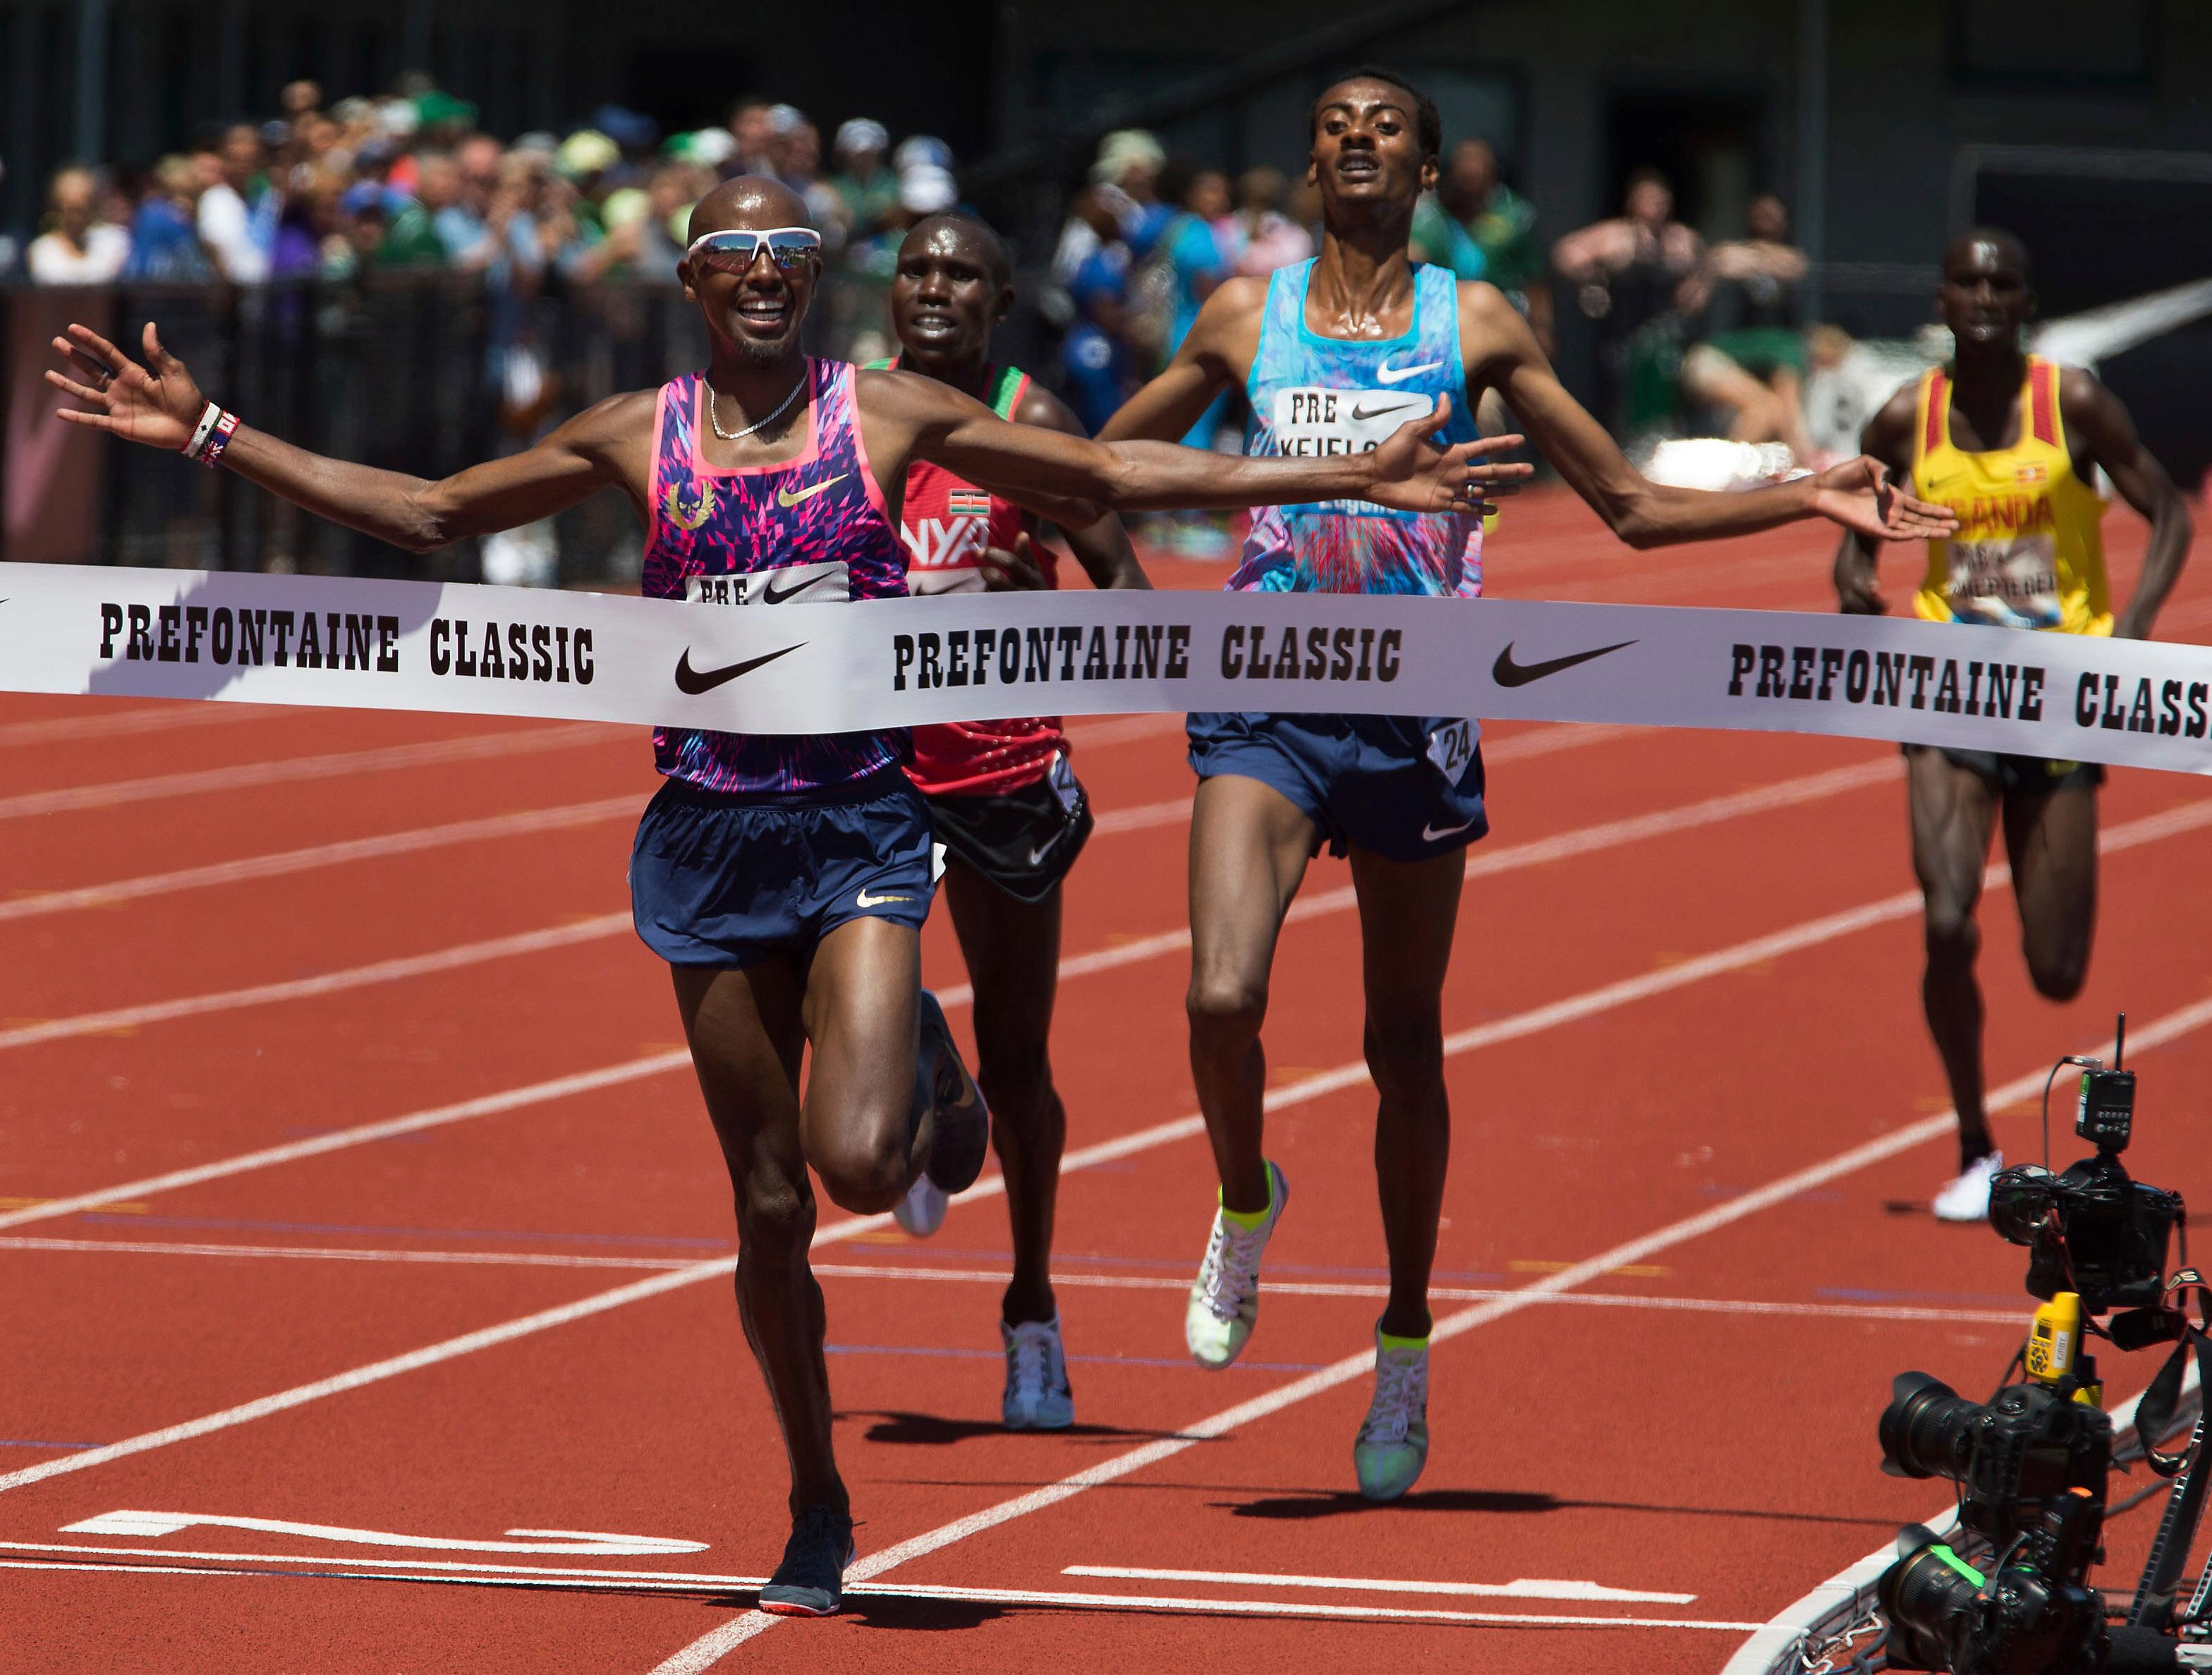 Mo Farah celebrates as he reaches to the finish line in the men's 5,000 meters in his last race in the U.S. at the IAAF Diamond League Prefontaine Classic at Hayward Field in Eugene, Ore., Saturday, May 27, 2017. (Brian Davies/The Register-Guard via AP)